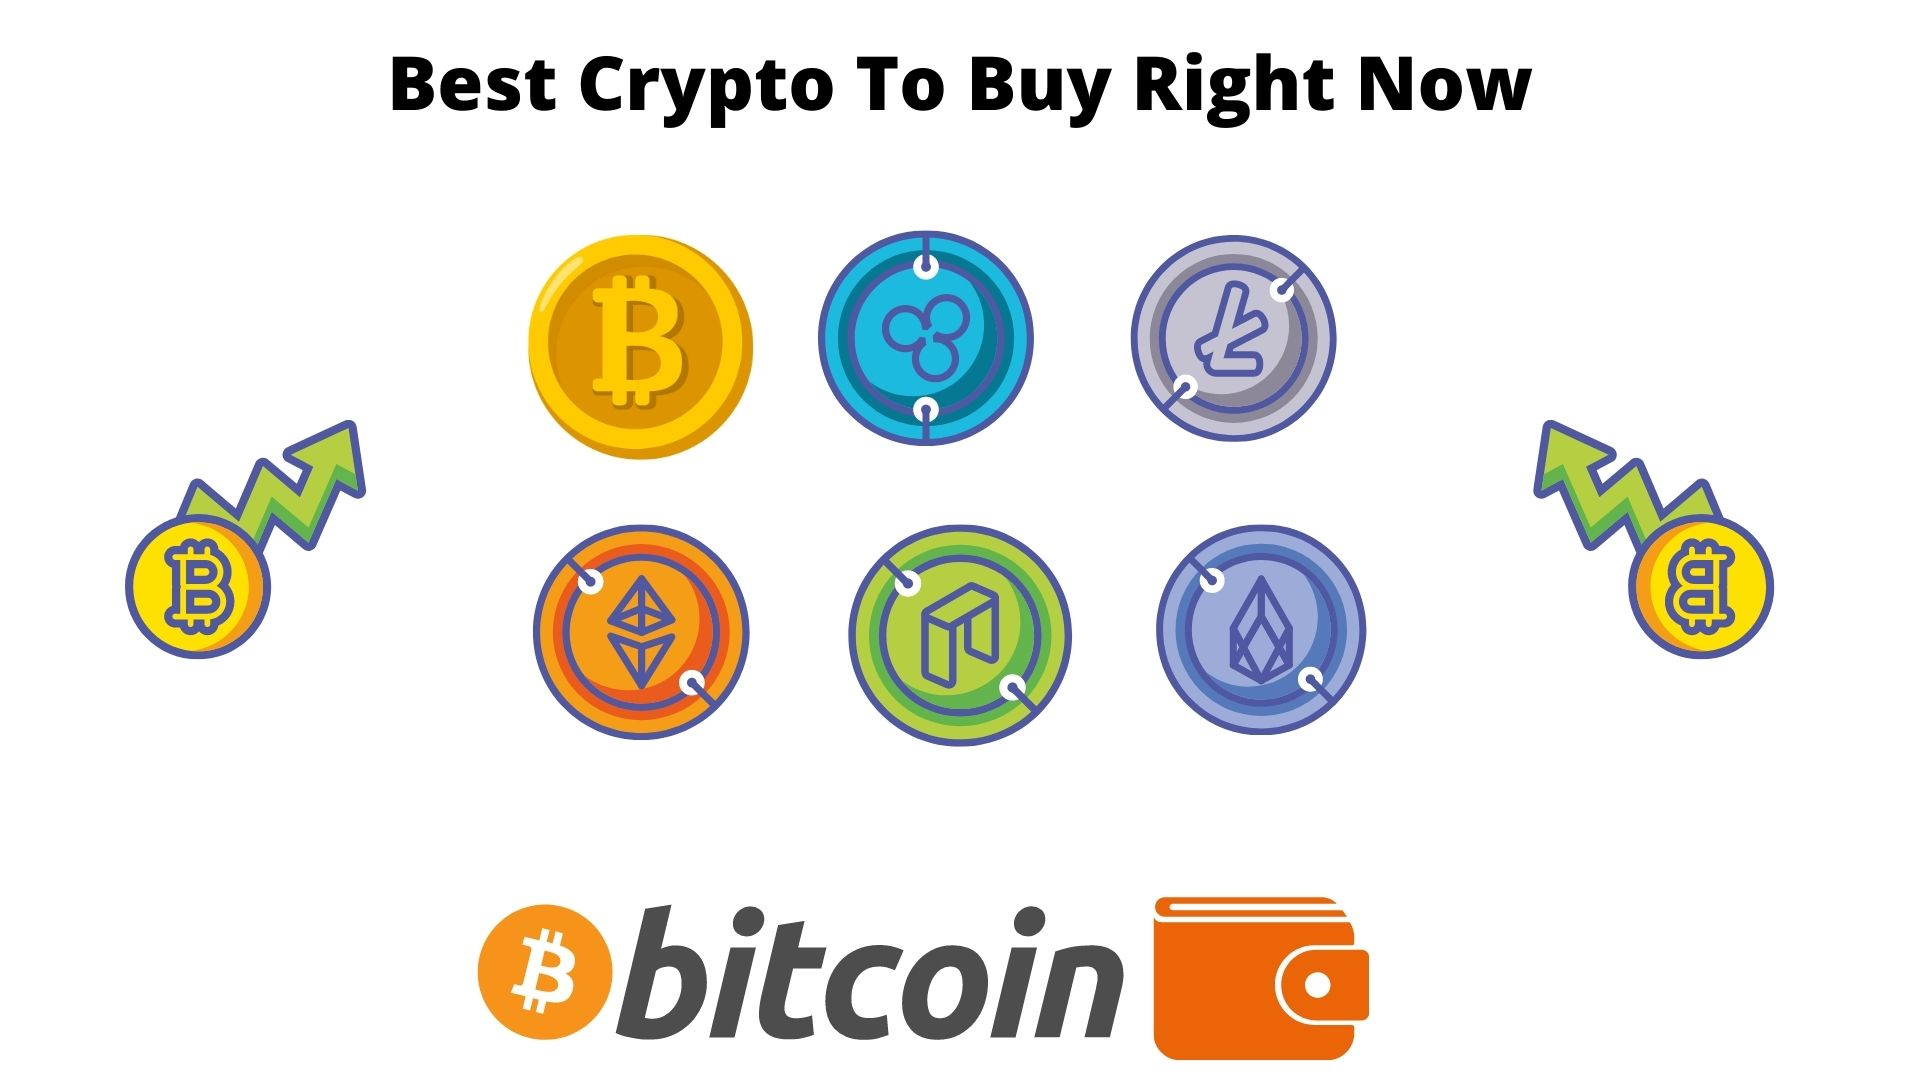 Best Crypto To Buy Right Now